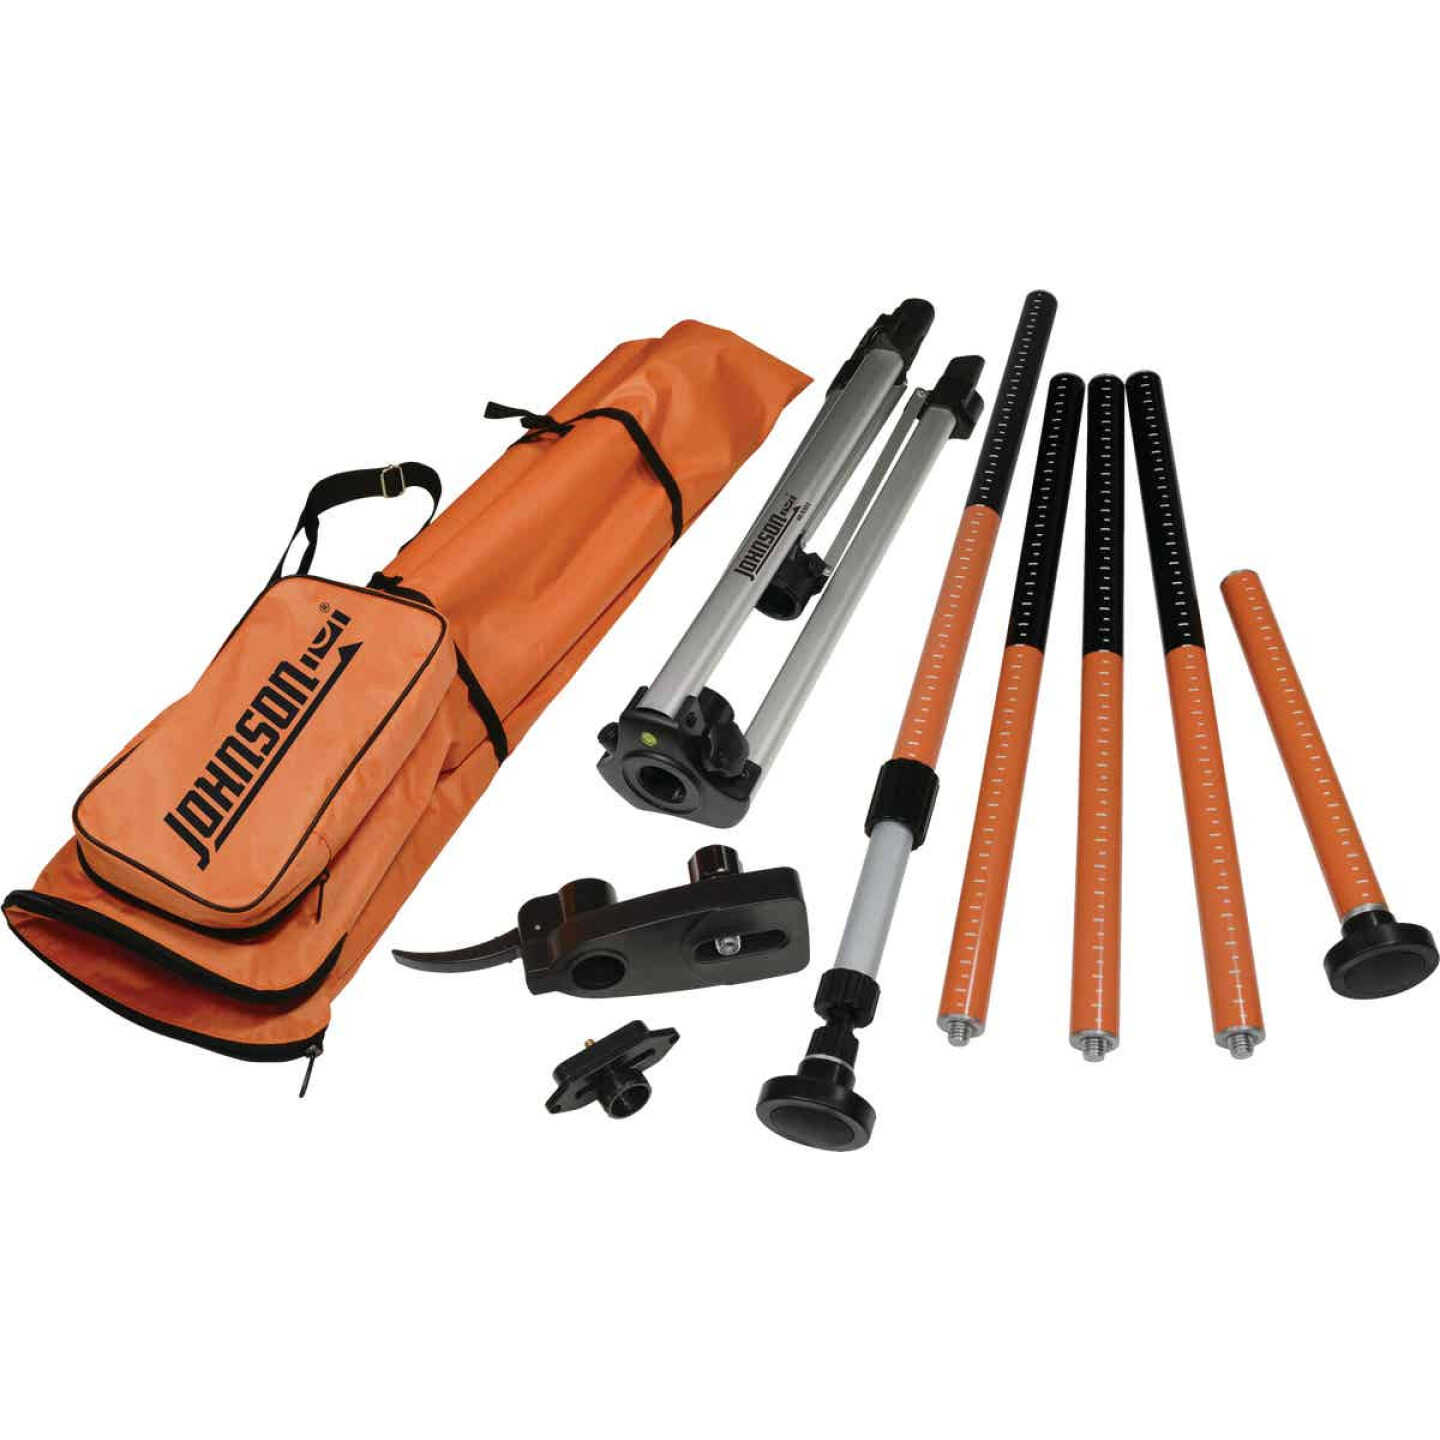 Johnson Level All-In-One Laser Mounting Pole with Tripod Image 1